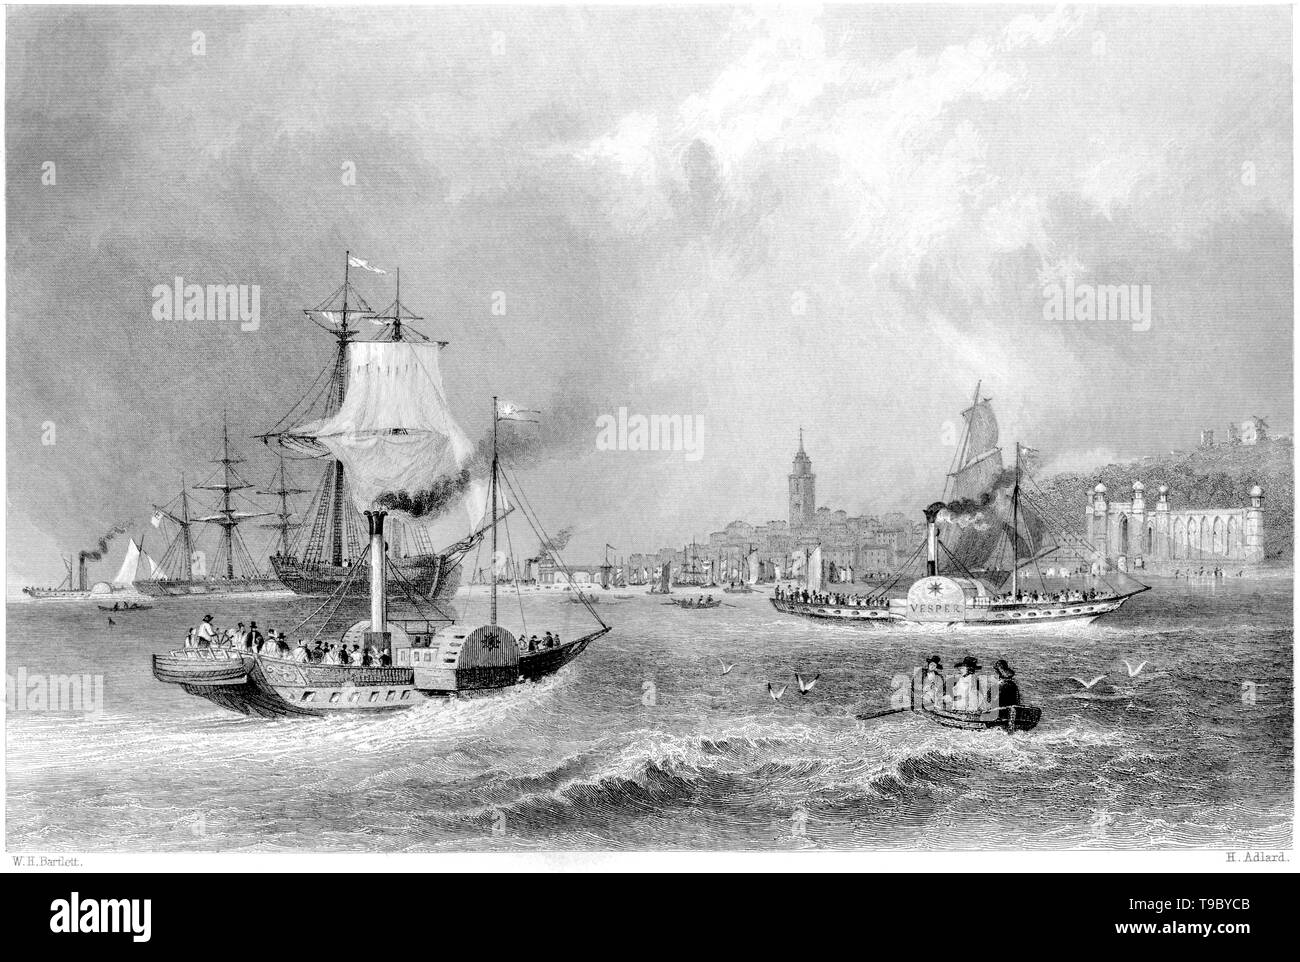 An engraving of Gravesend from the River scanned at high resolution from a book published in 1842.  Believed copyright free. Stock Photo